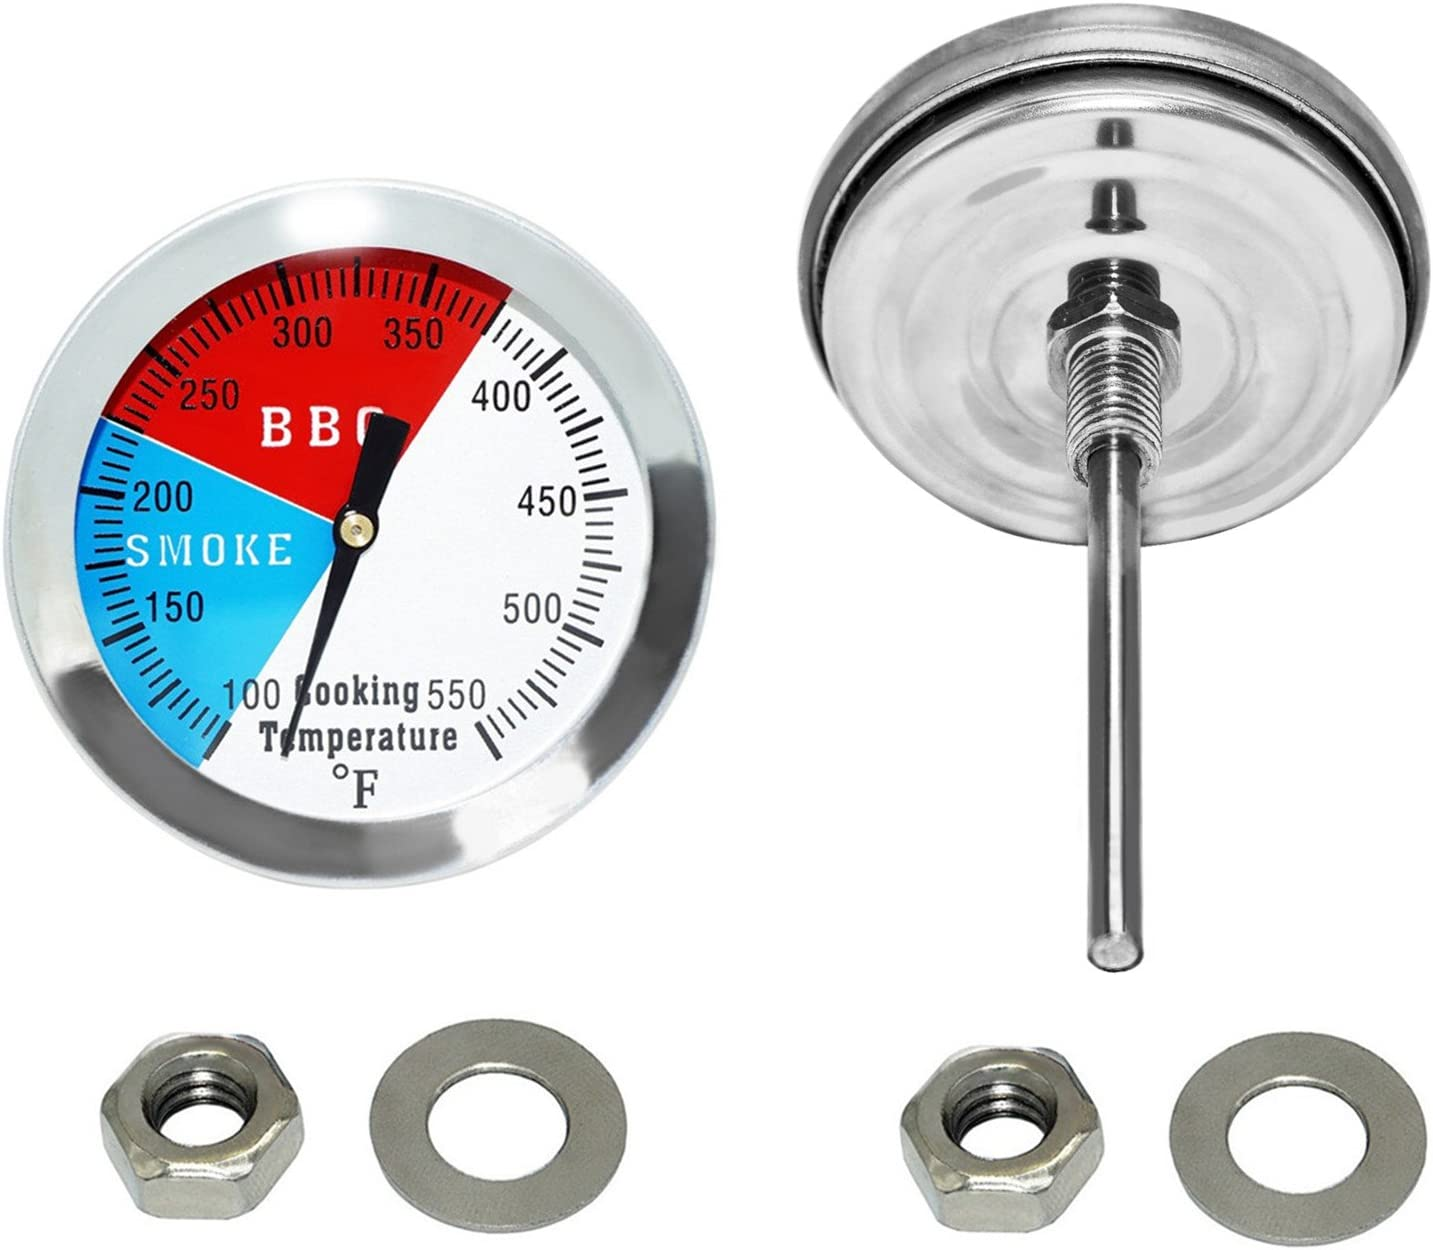 Stainless Steel Temp Gauge 2-Pack DOZYANT 2 Inch Barbecue Charcoal Grill Smoker Temperature Gauge Pit BBQ Thermometer Fahrenheit and Heat Indicator for Meat Cooking Port Lamb Beef